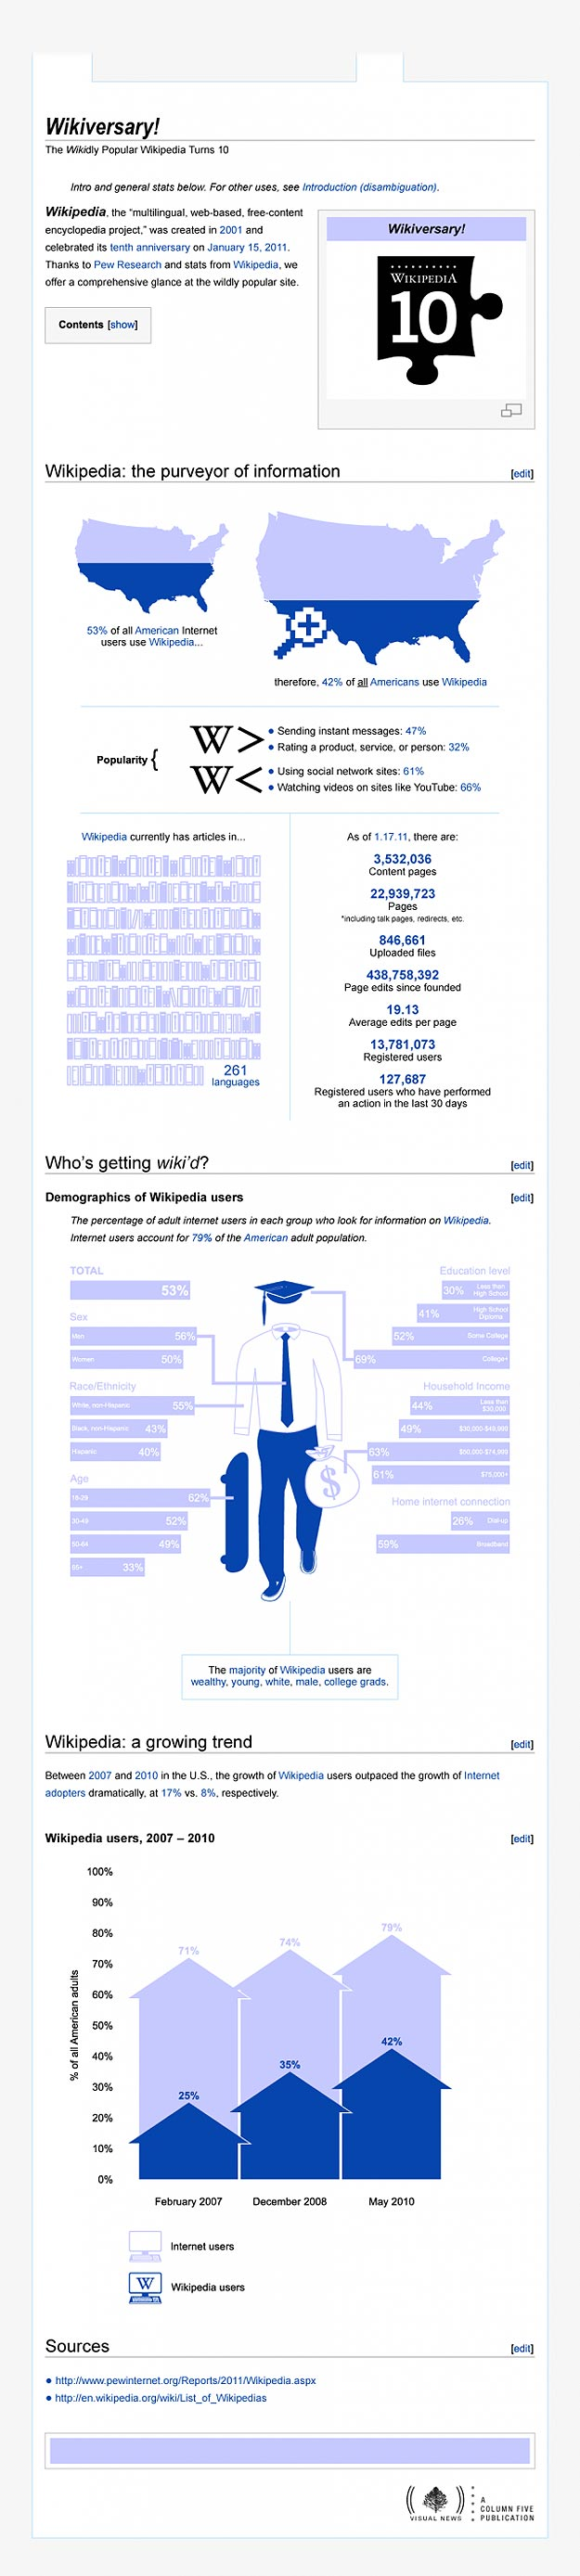 Wikipedia Free Online Encyclopedia Infographic